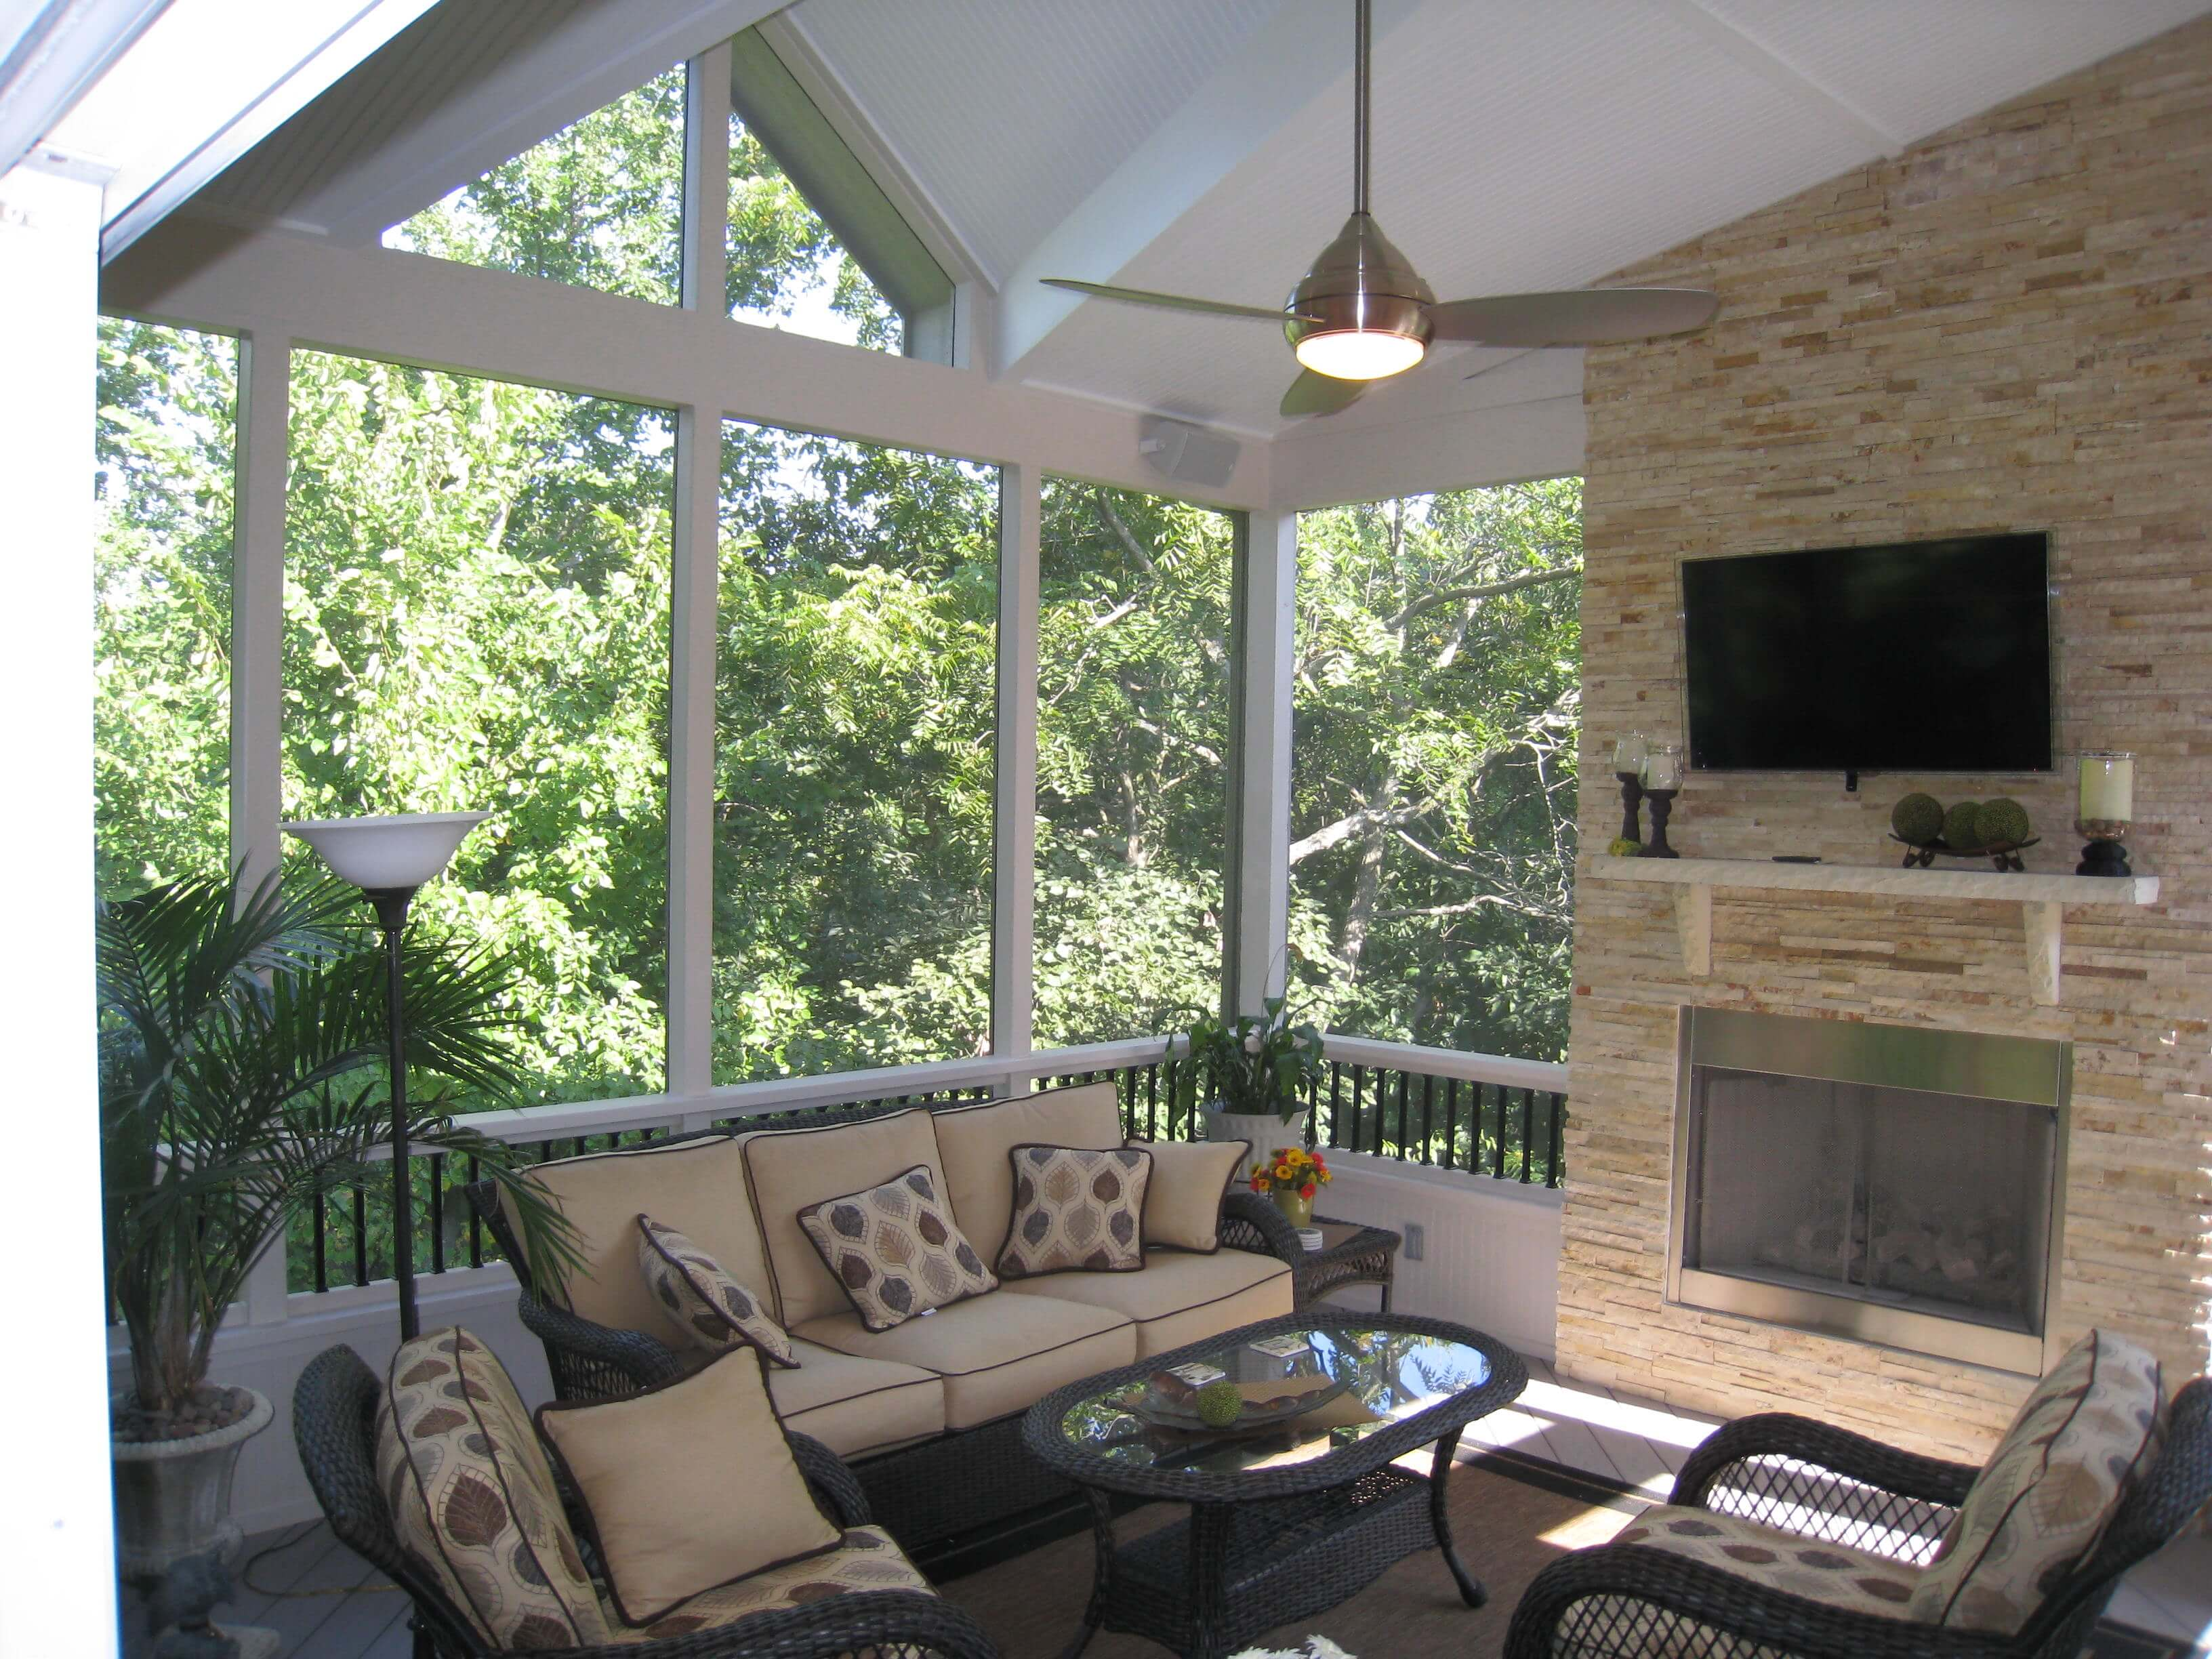 Cozy screened porch with fireplace